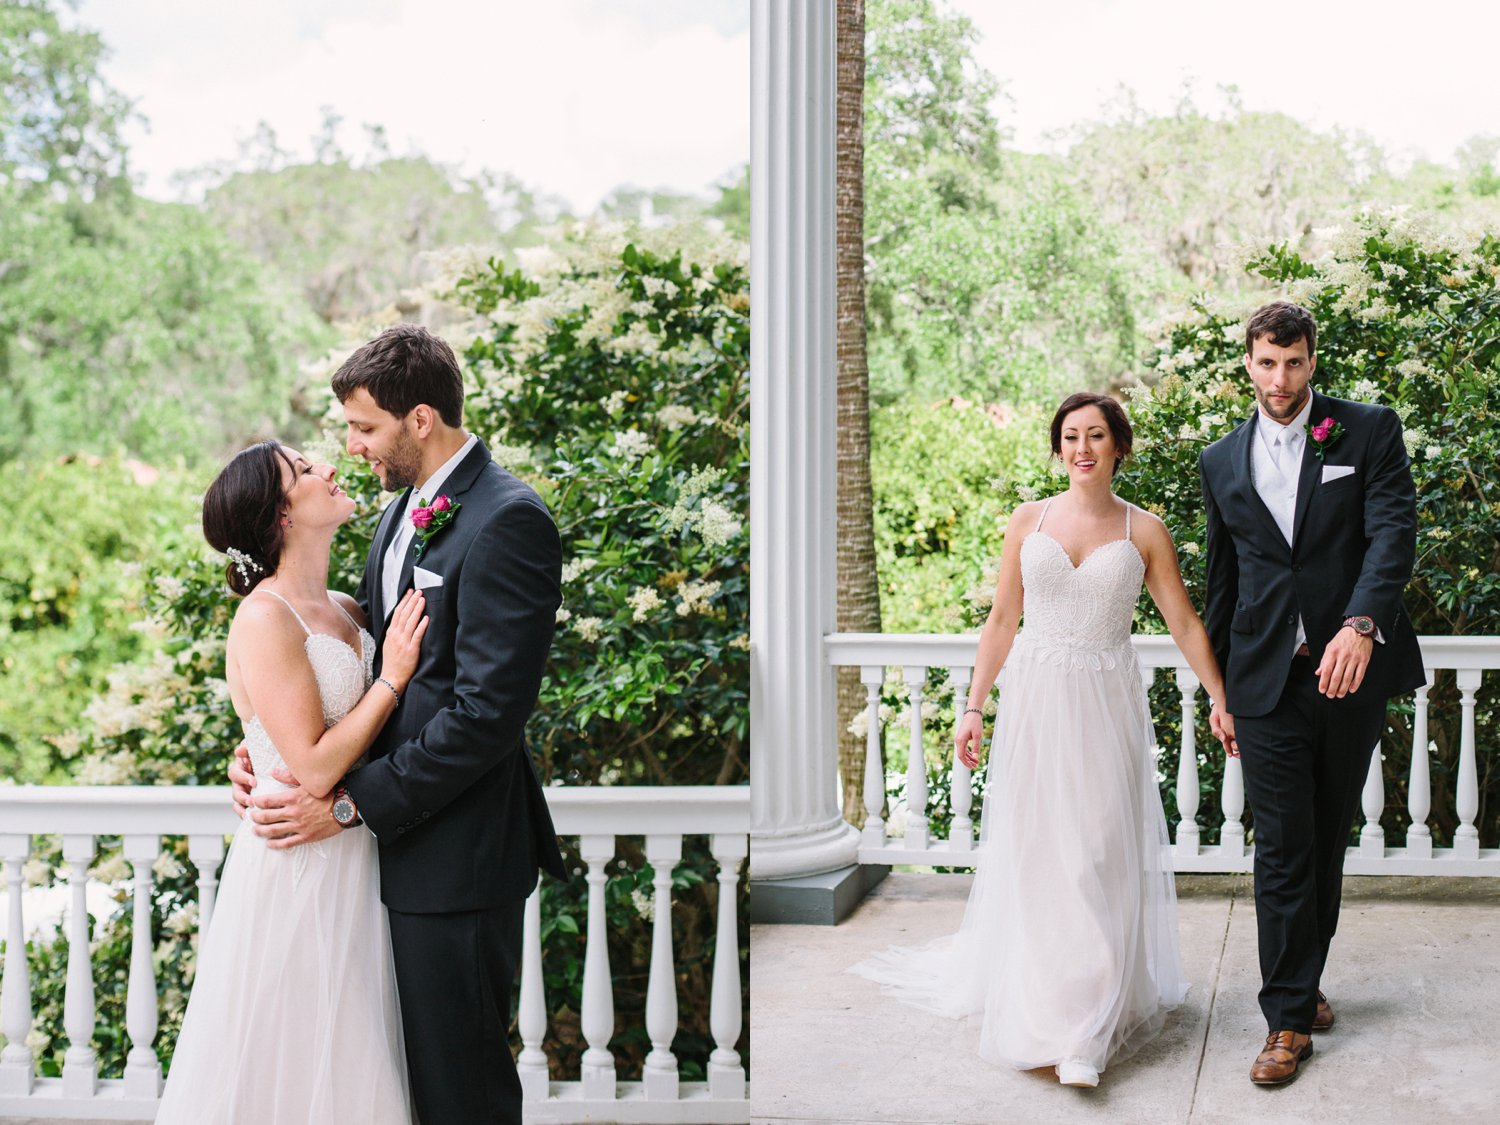 Lindsey_A_Miller_Photography_mcleod_plantation_wedding_charleston_south_carolina_clear_tent_spring_mod_events_050.jpg